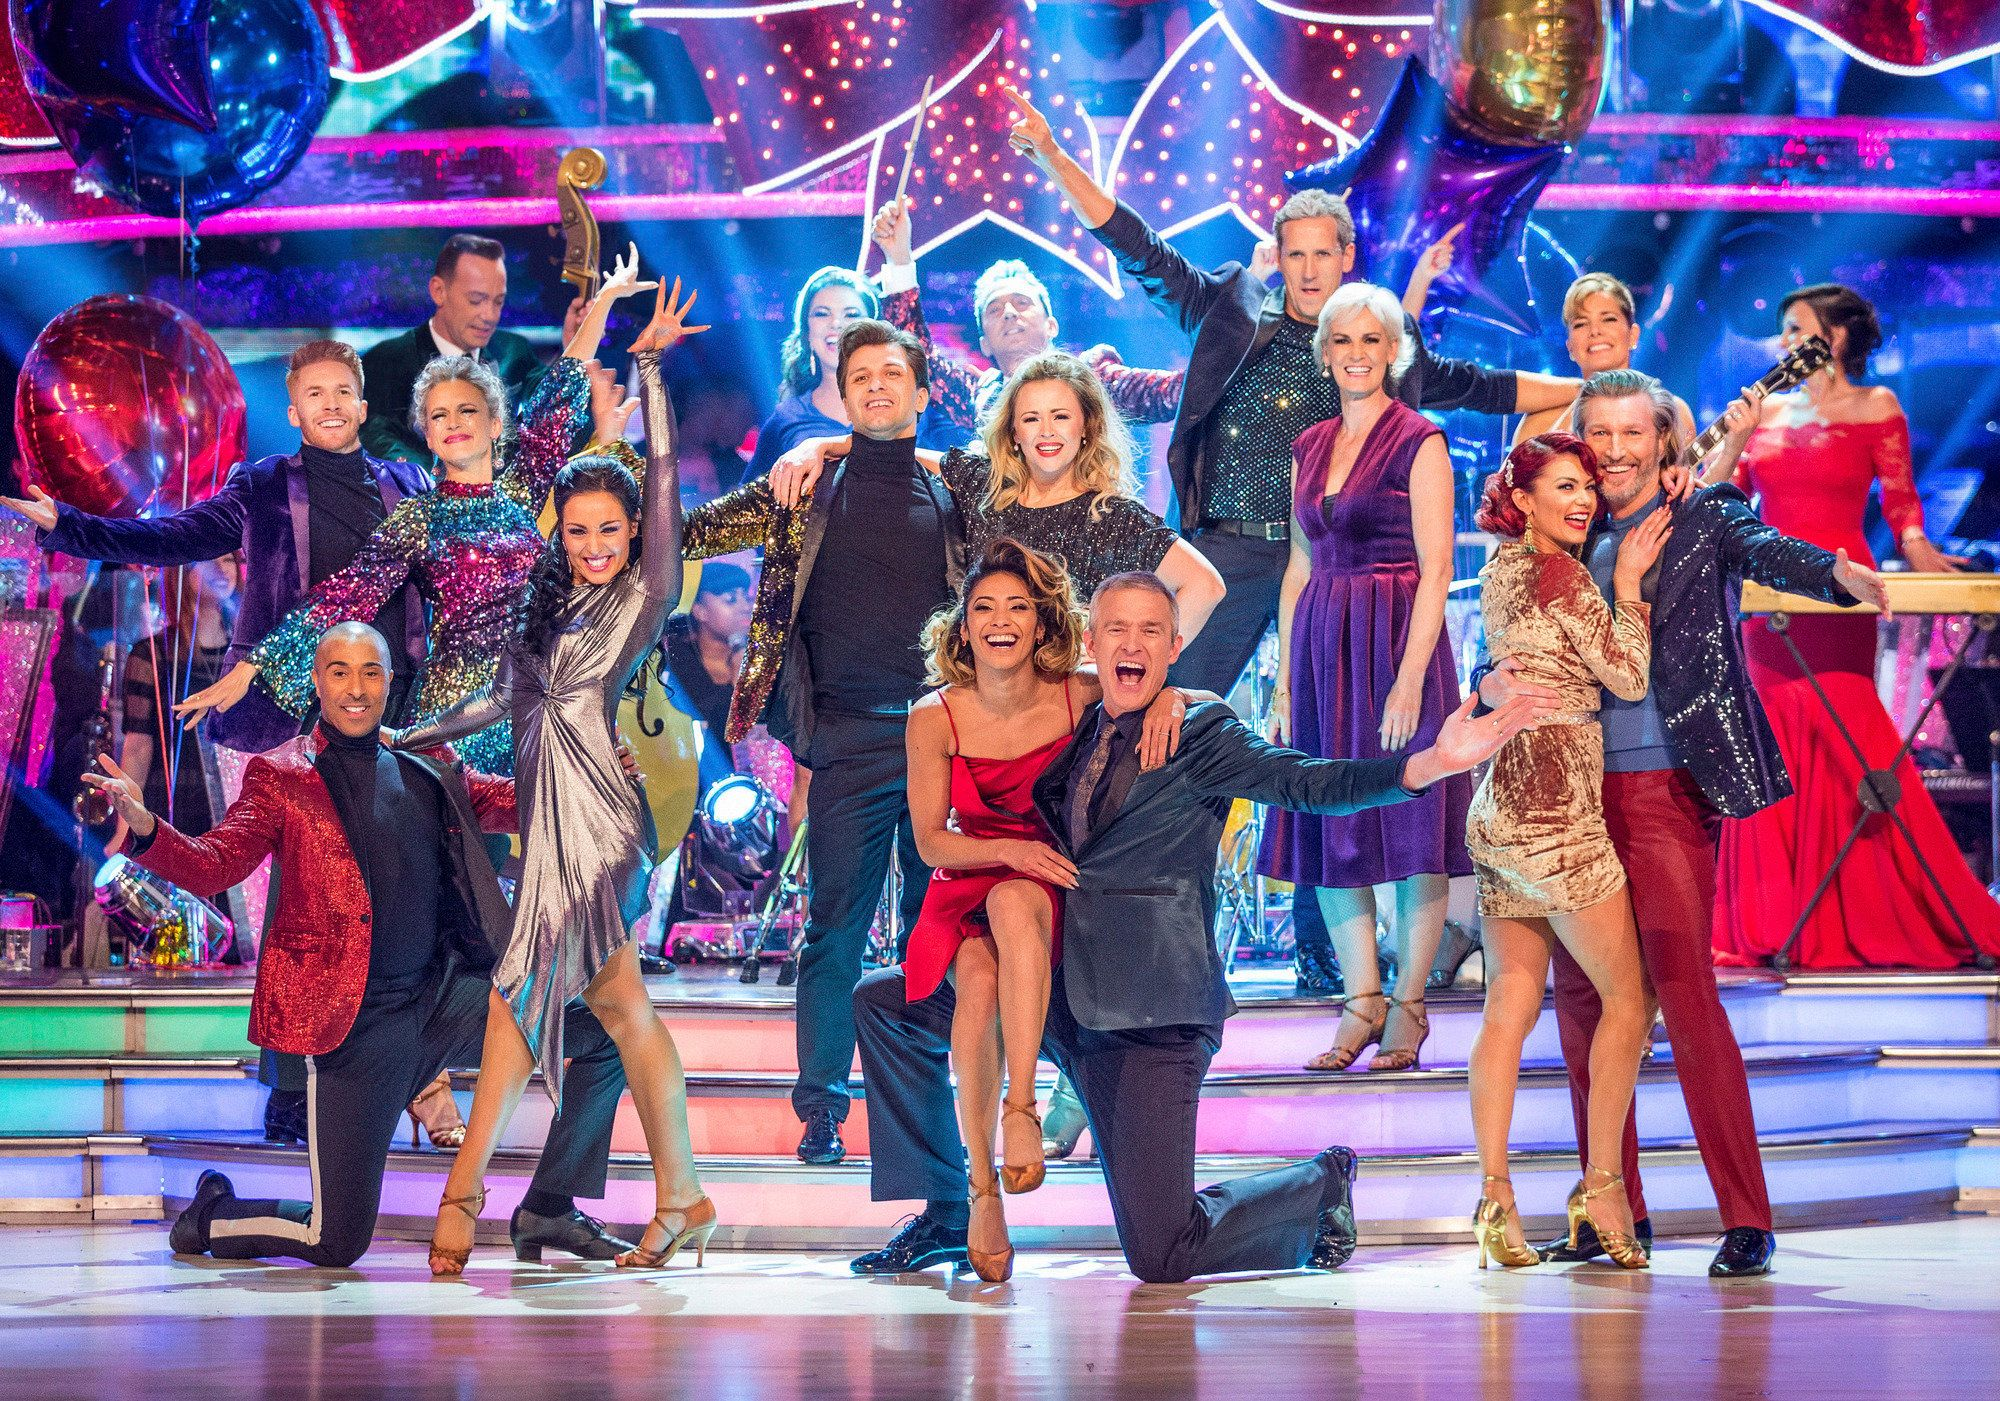 'Strictly Come Dancing' Crowns A New Christmas Champion During Glittering Festive